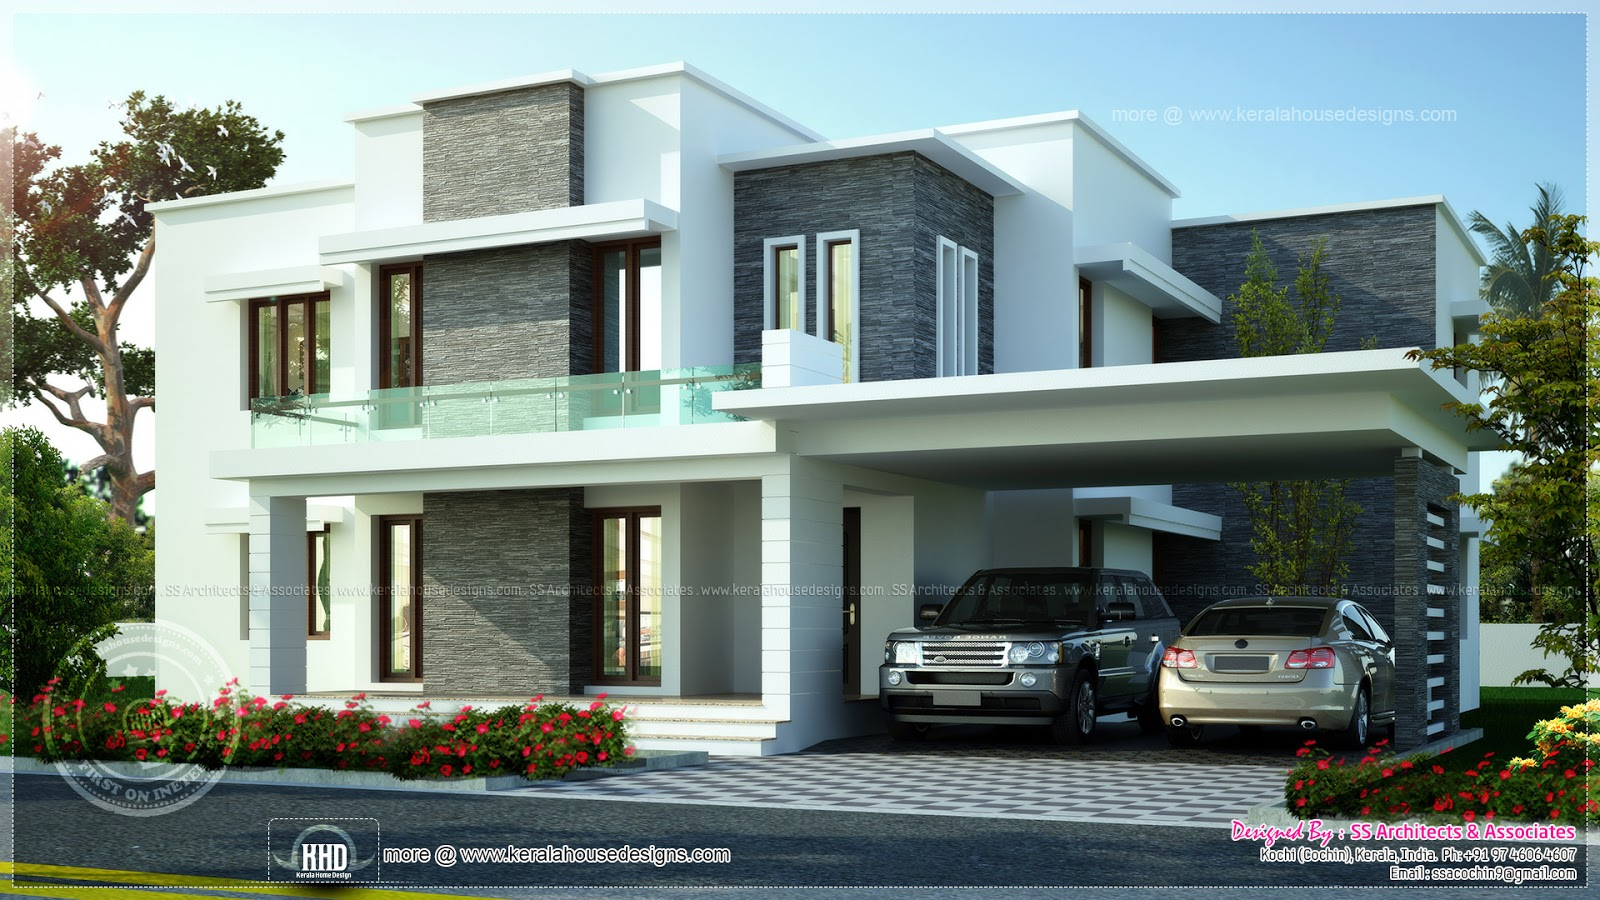 3600 sq ft contemporary villa exterior elevation kerala for Modern house designs and floor plans in india